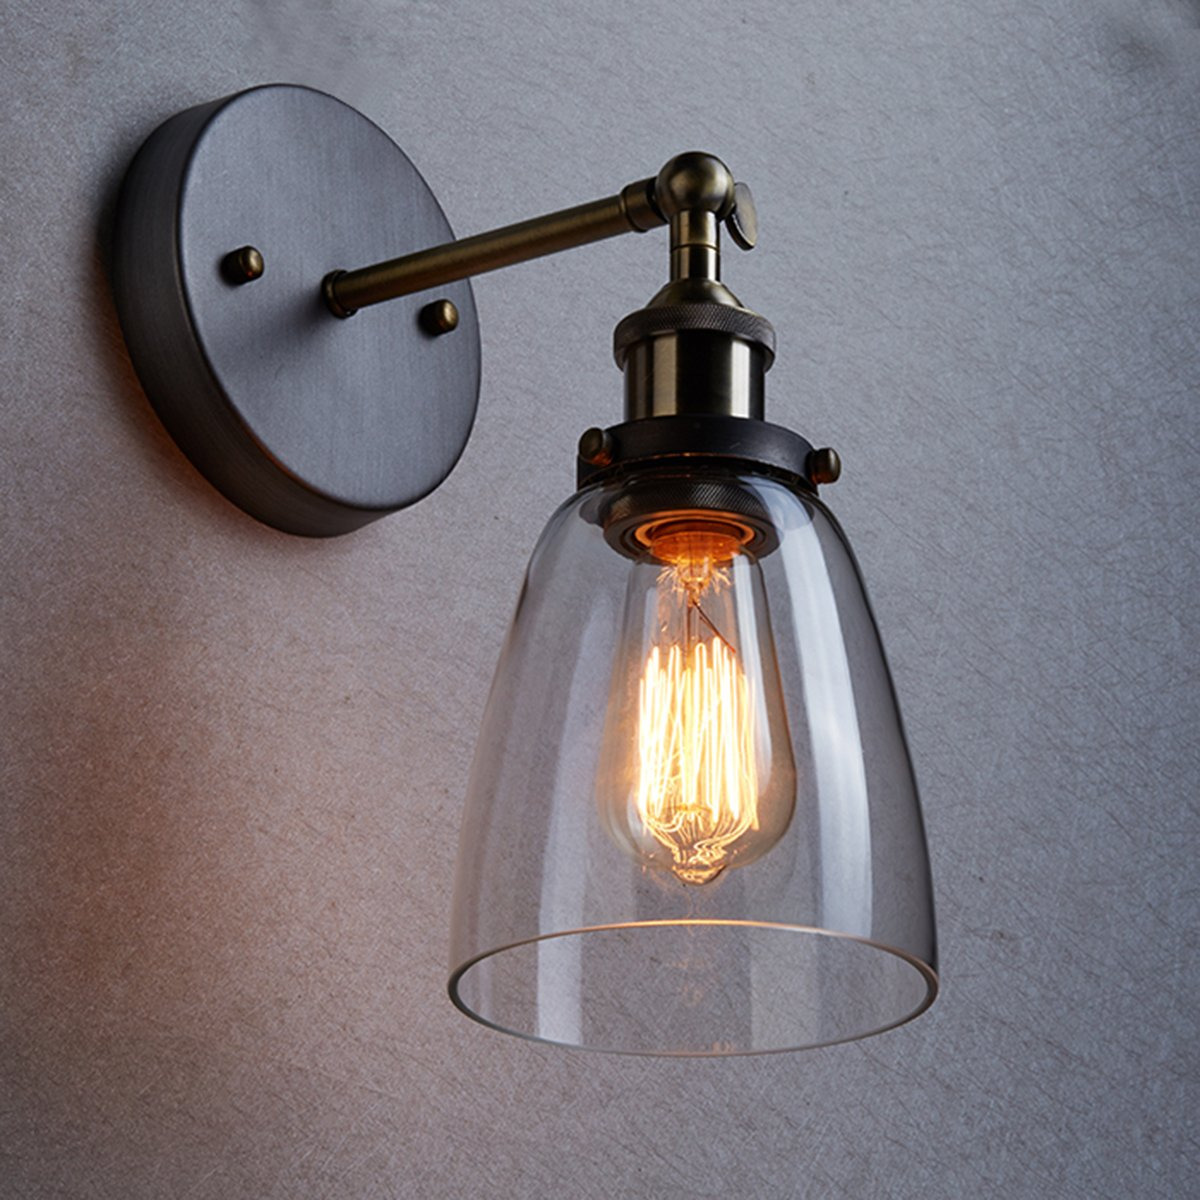 CLAXY Ecopower Industrial Edison Old Fashion Simplicity Glass Wall Sconce  Metal Base Cap     Amazon.com